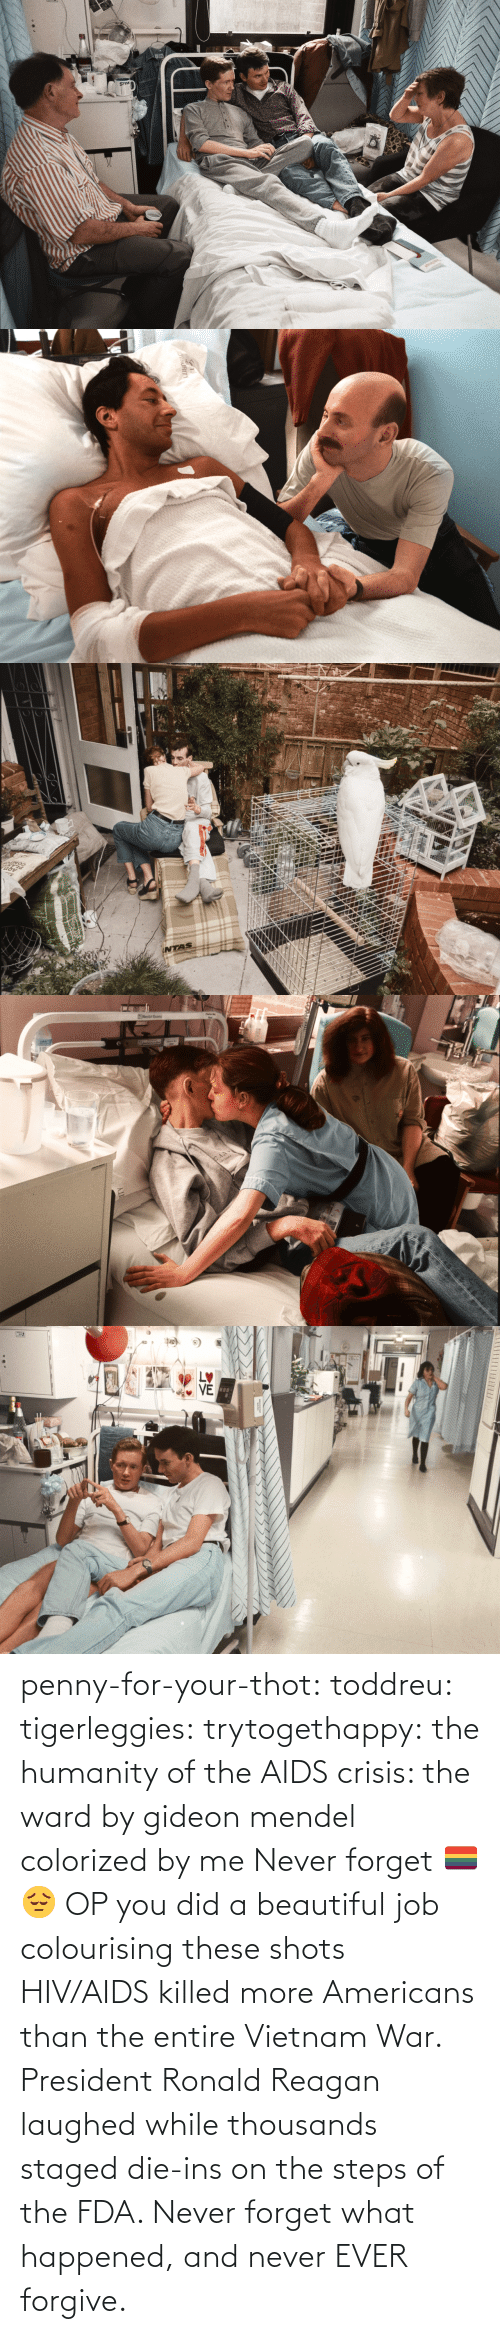 shots: STVE  yboagt   INTAS   ENesbit Evans  CAN   LETTI penny-for-your-thot: toddreu:  tigerleggies:  trytogethappy:  the humanity of the AIDS crisis: the ward by gideon mendel colorized by me   Never forget 🏳️‍🌈😔   OP you did a beautiful job colourising these shots   HIV/AIDS killed more Americans than the entire Vietnam War. President Ronald Reagan laughed while thousands staged die-ins on the steps of the FDA. Never forget what happened, and never EVER forgive.